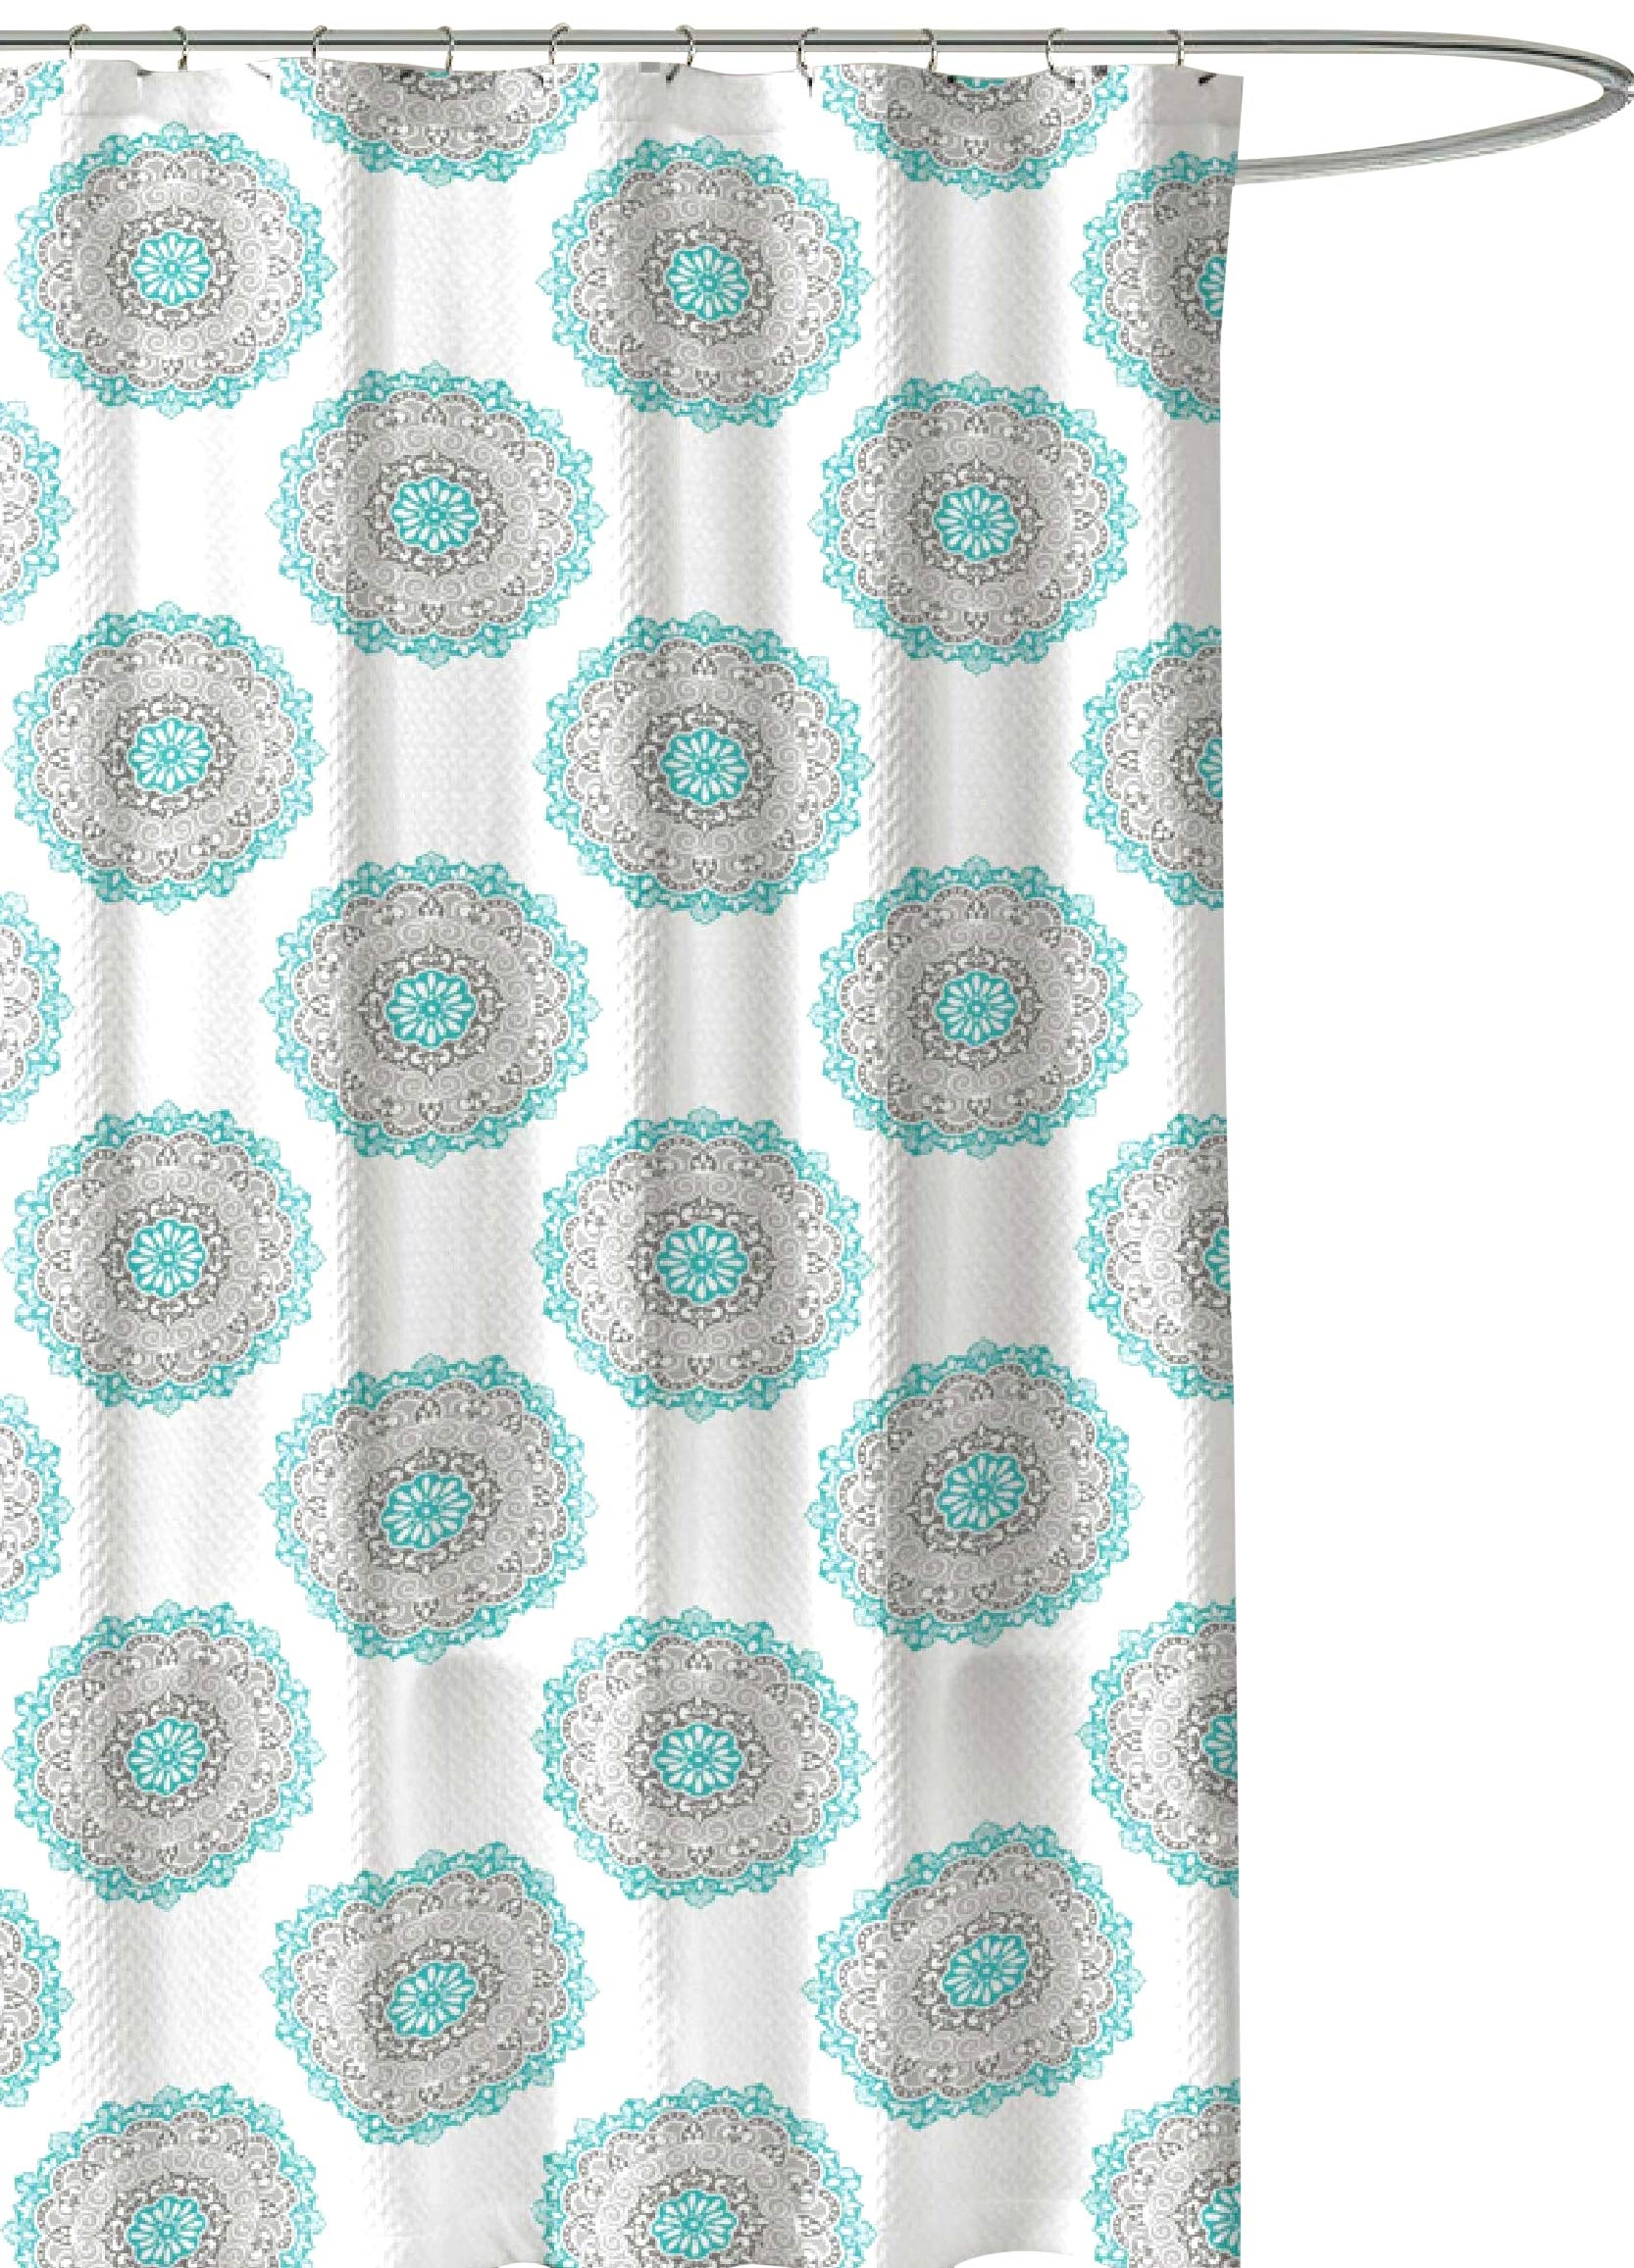 C.H.D Home Bathroom Fabric Shower Curtain: Aqua Mint Medallion Circle Design (White) - For Damask Designs, these shower curtains make an attractive choice. Universal appeal for men or women. It will match well with various color palates of towels, rugs, bathroom mats and any other bathroom accessories to create mini bathroom makeover. Material: 100% Polyester cloth. Polyester is naturally mold and mildew resistant making it a premium choice for bath tub curtains. - shower-curtains, bathroom-linens, bathroom - 914xurhDLEL -